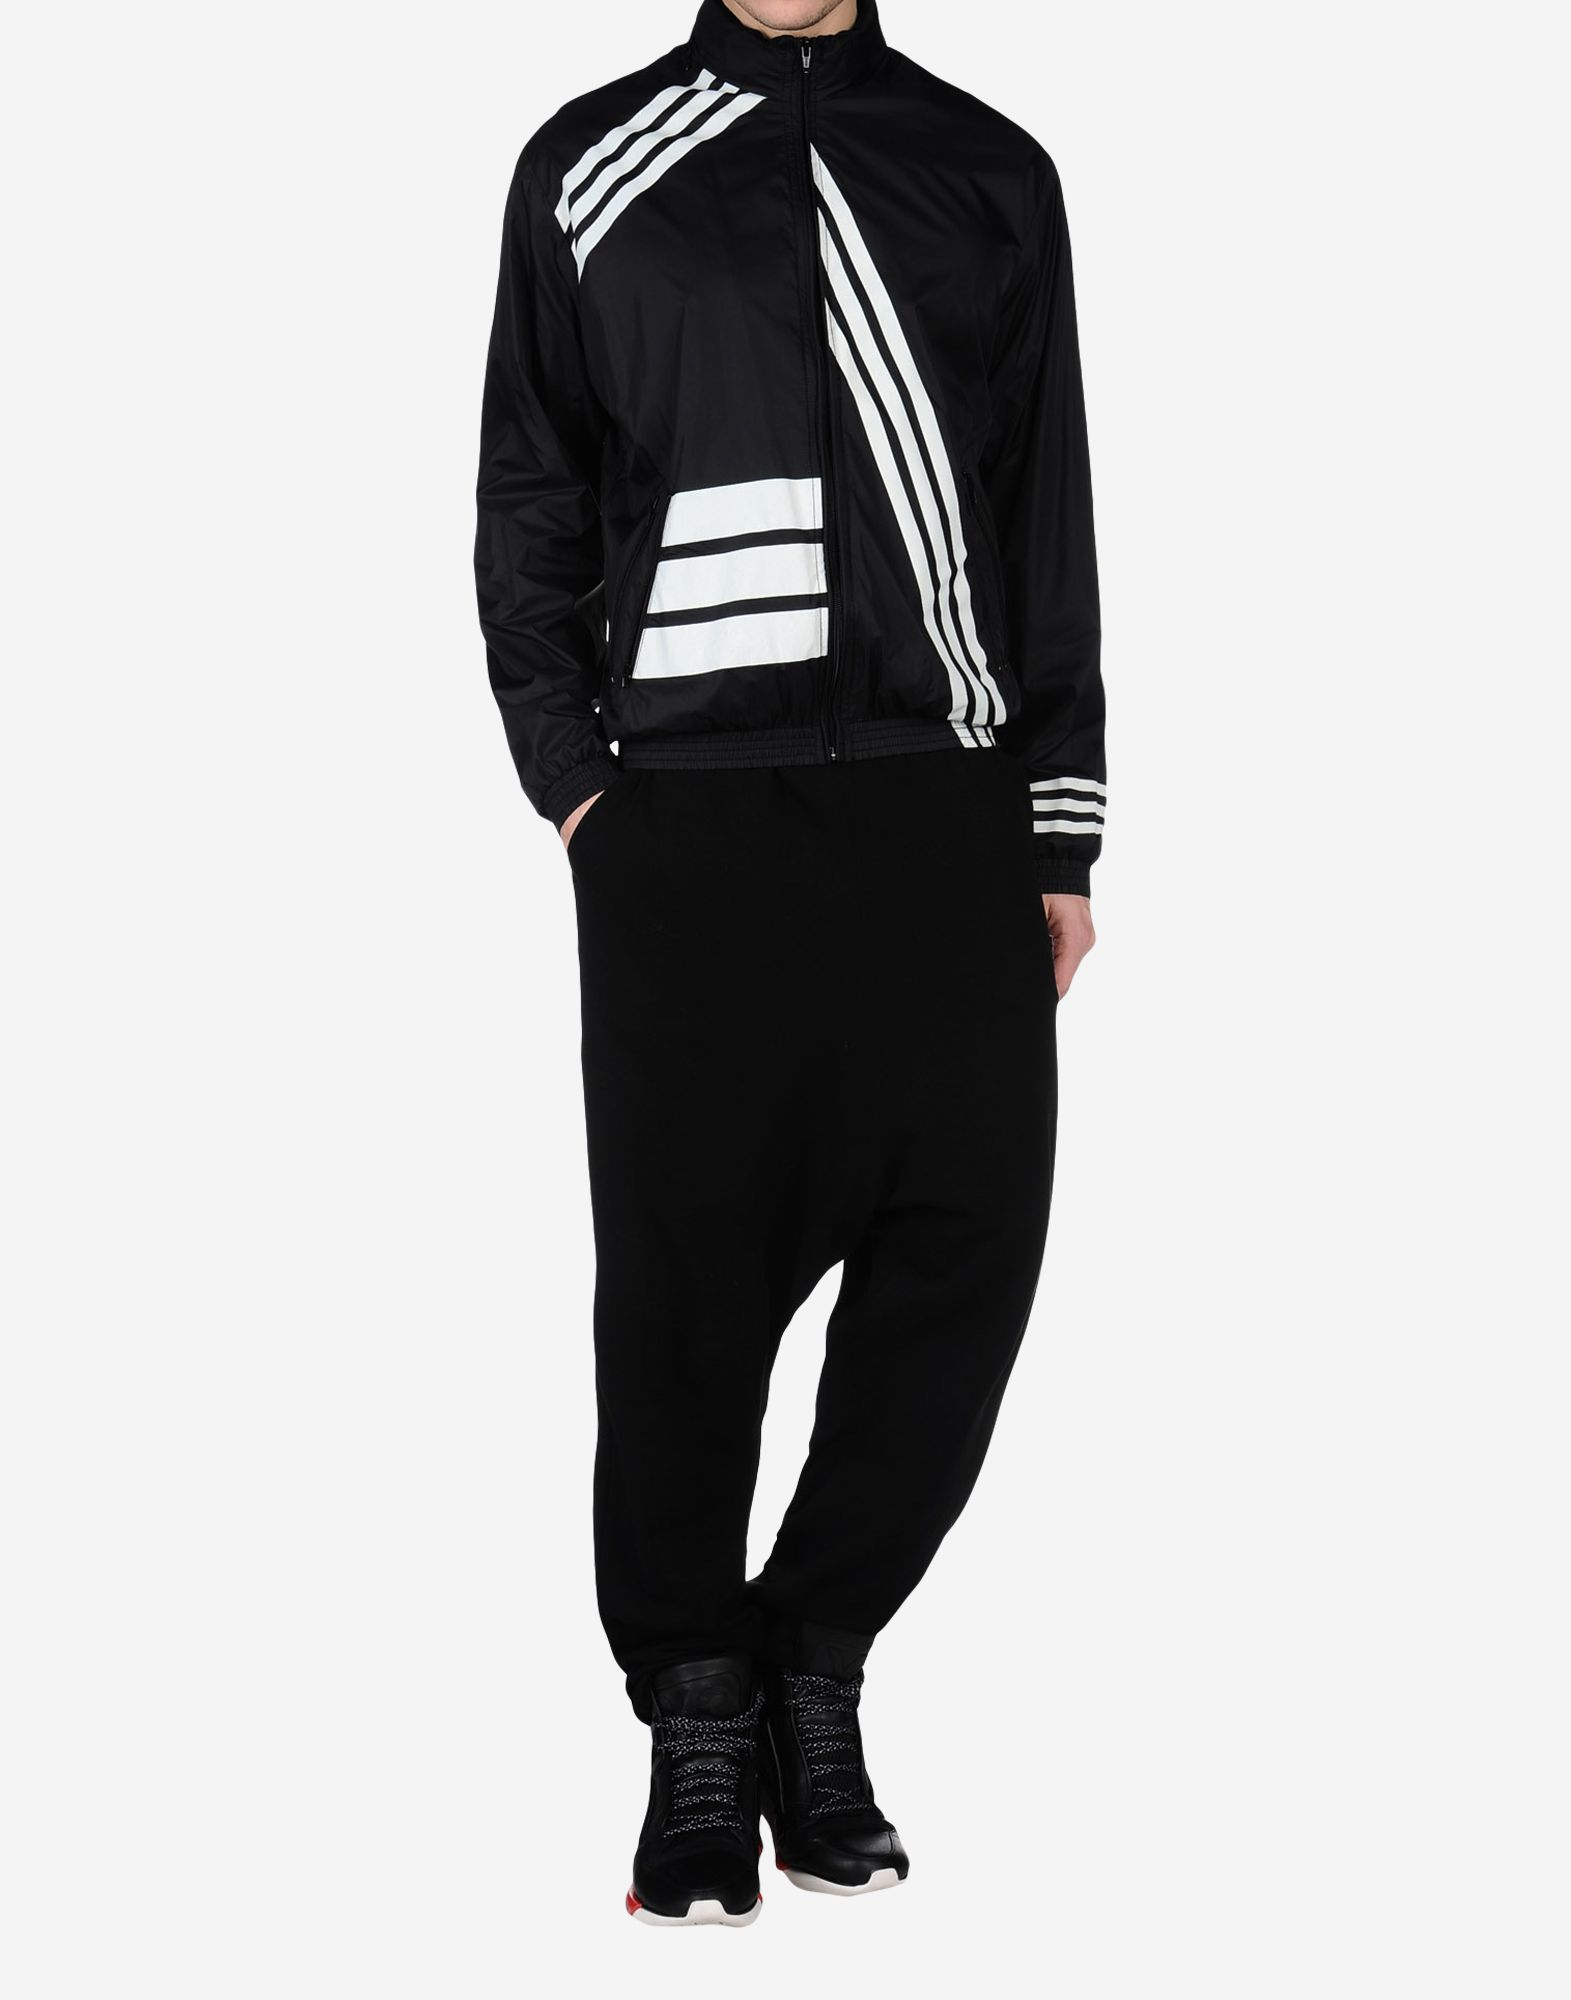 Y 3 Windbreaker Windbreakers for Men | Adidas Y-3 Official Store